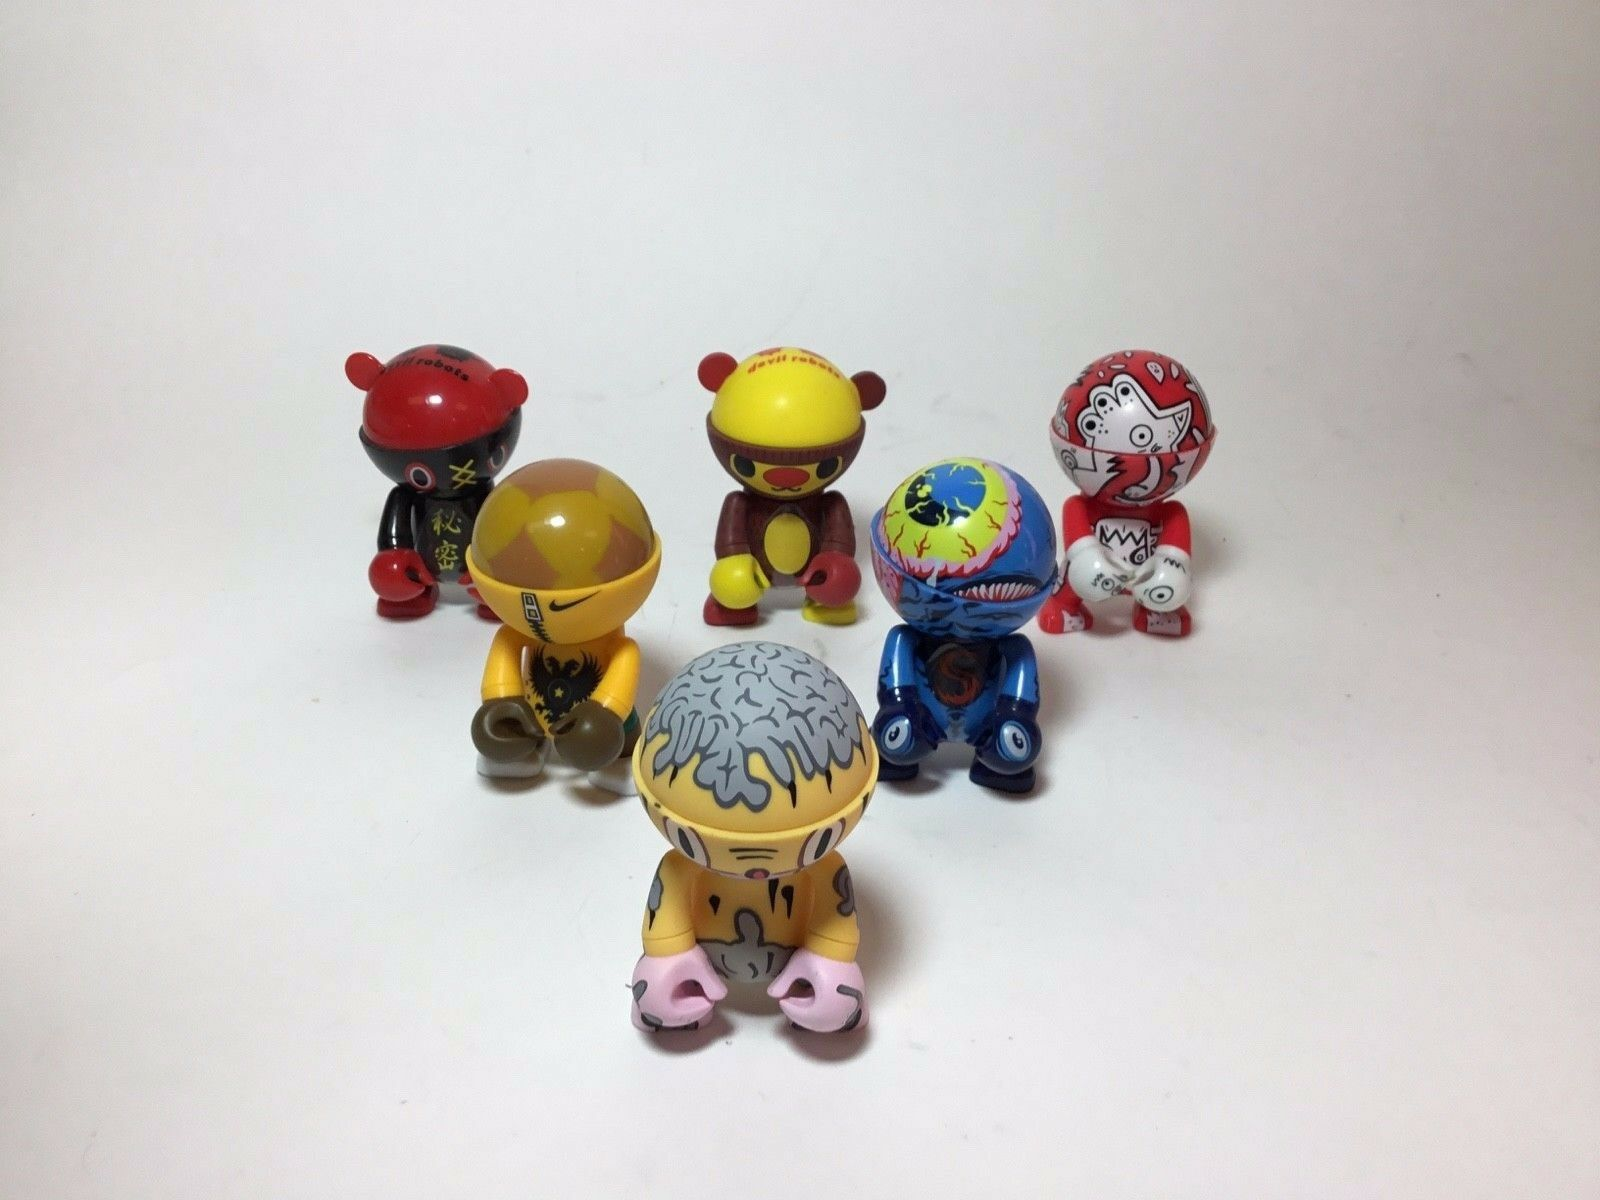 Trexi Toy Figures Set of 6 by Artists, Baseman, Burgerman Others